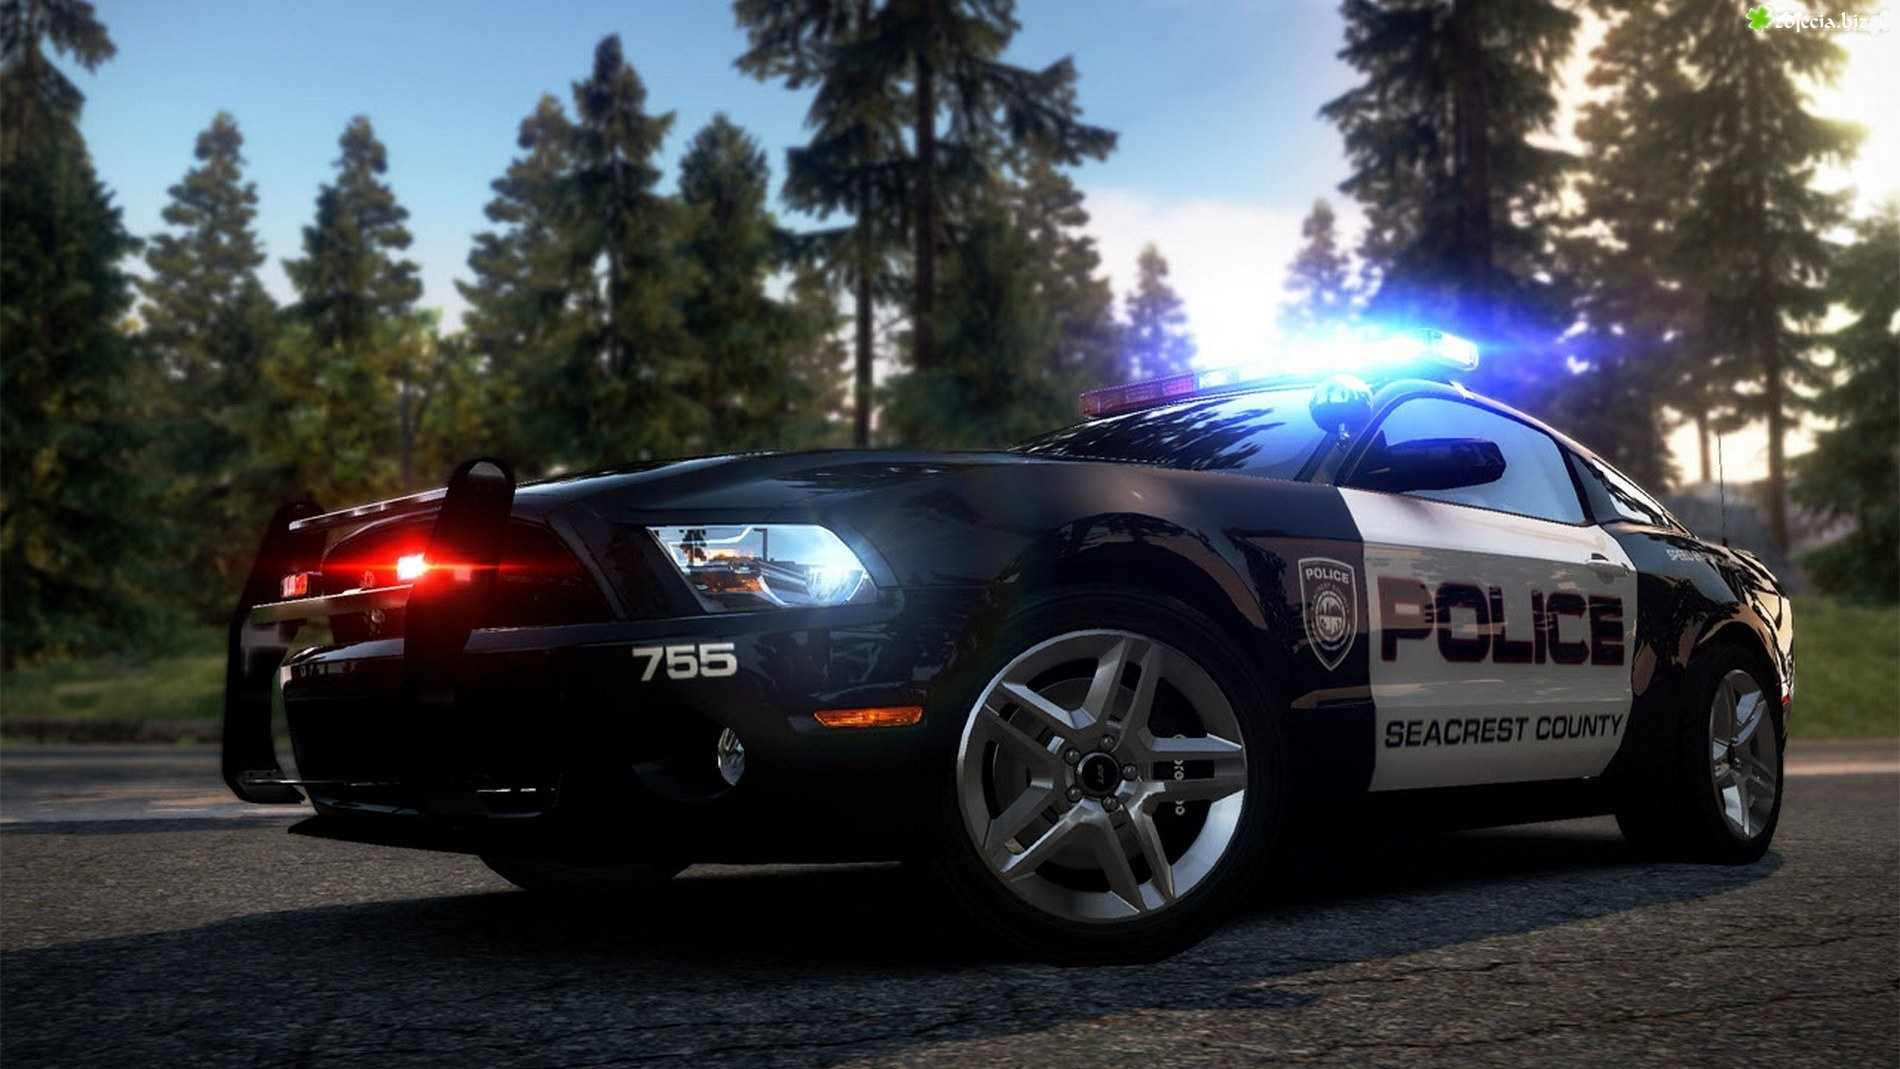 New Police Car Wallpaper Hd Desktop - Need For Speed Hot Pursuit Police Cars - HD Wallpaper